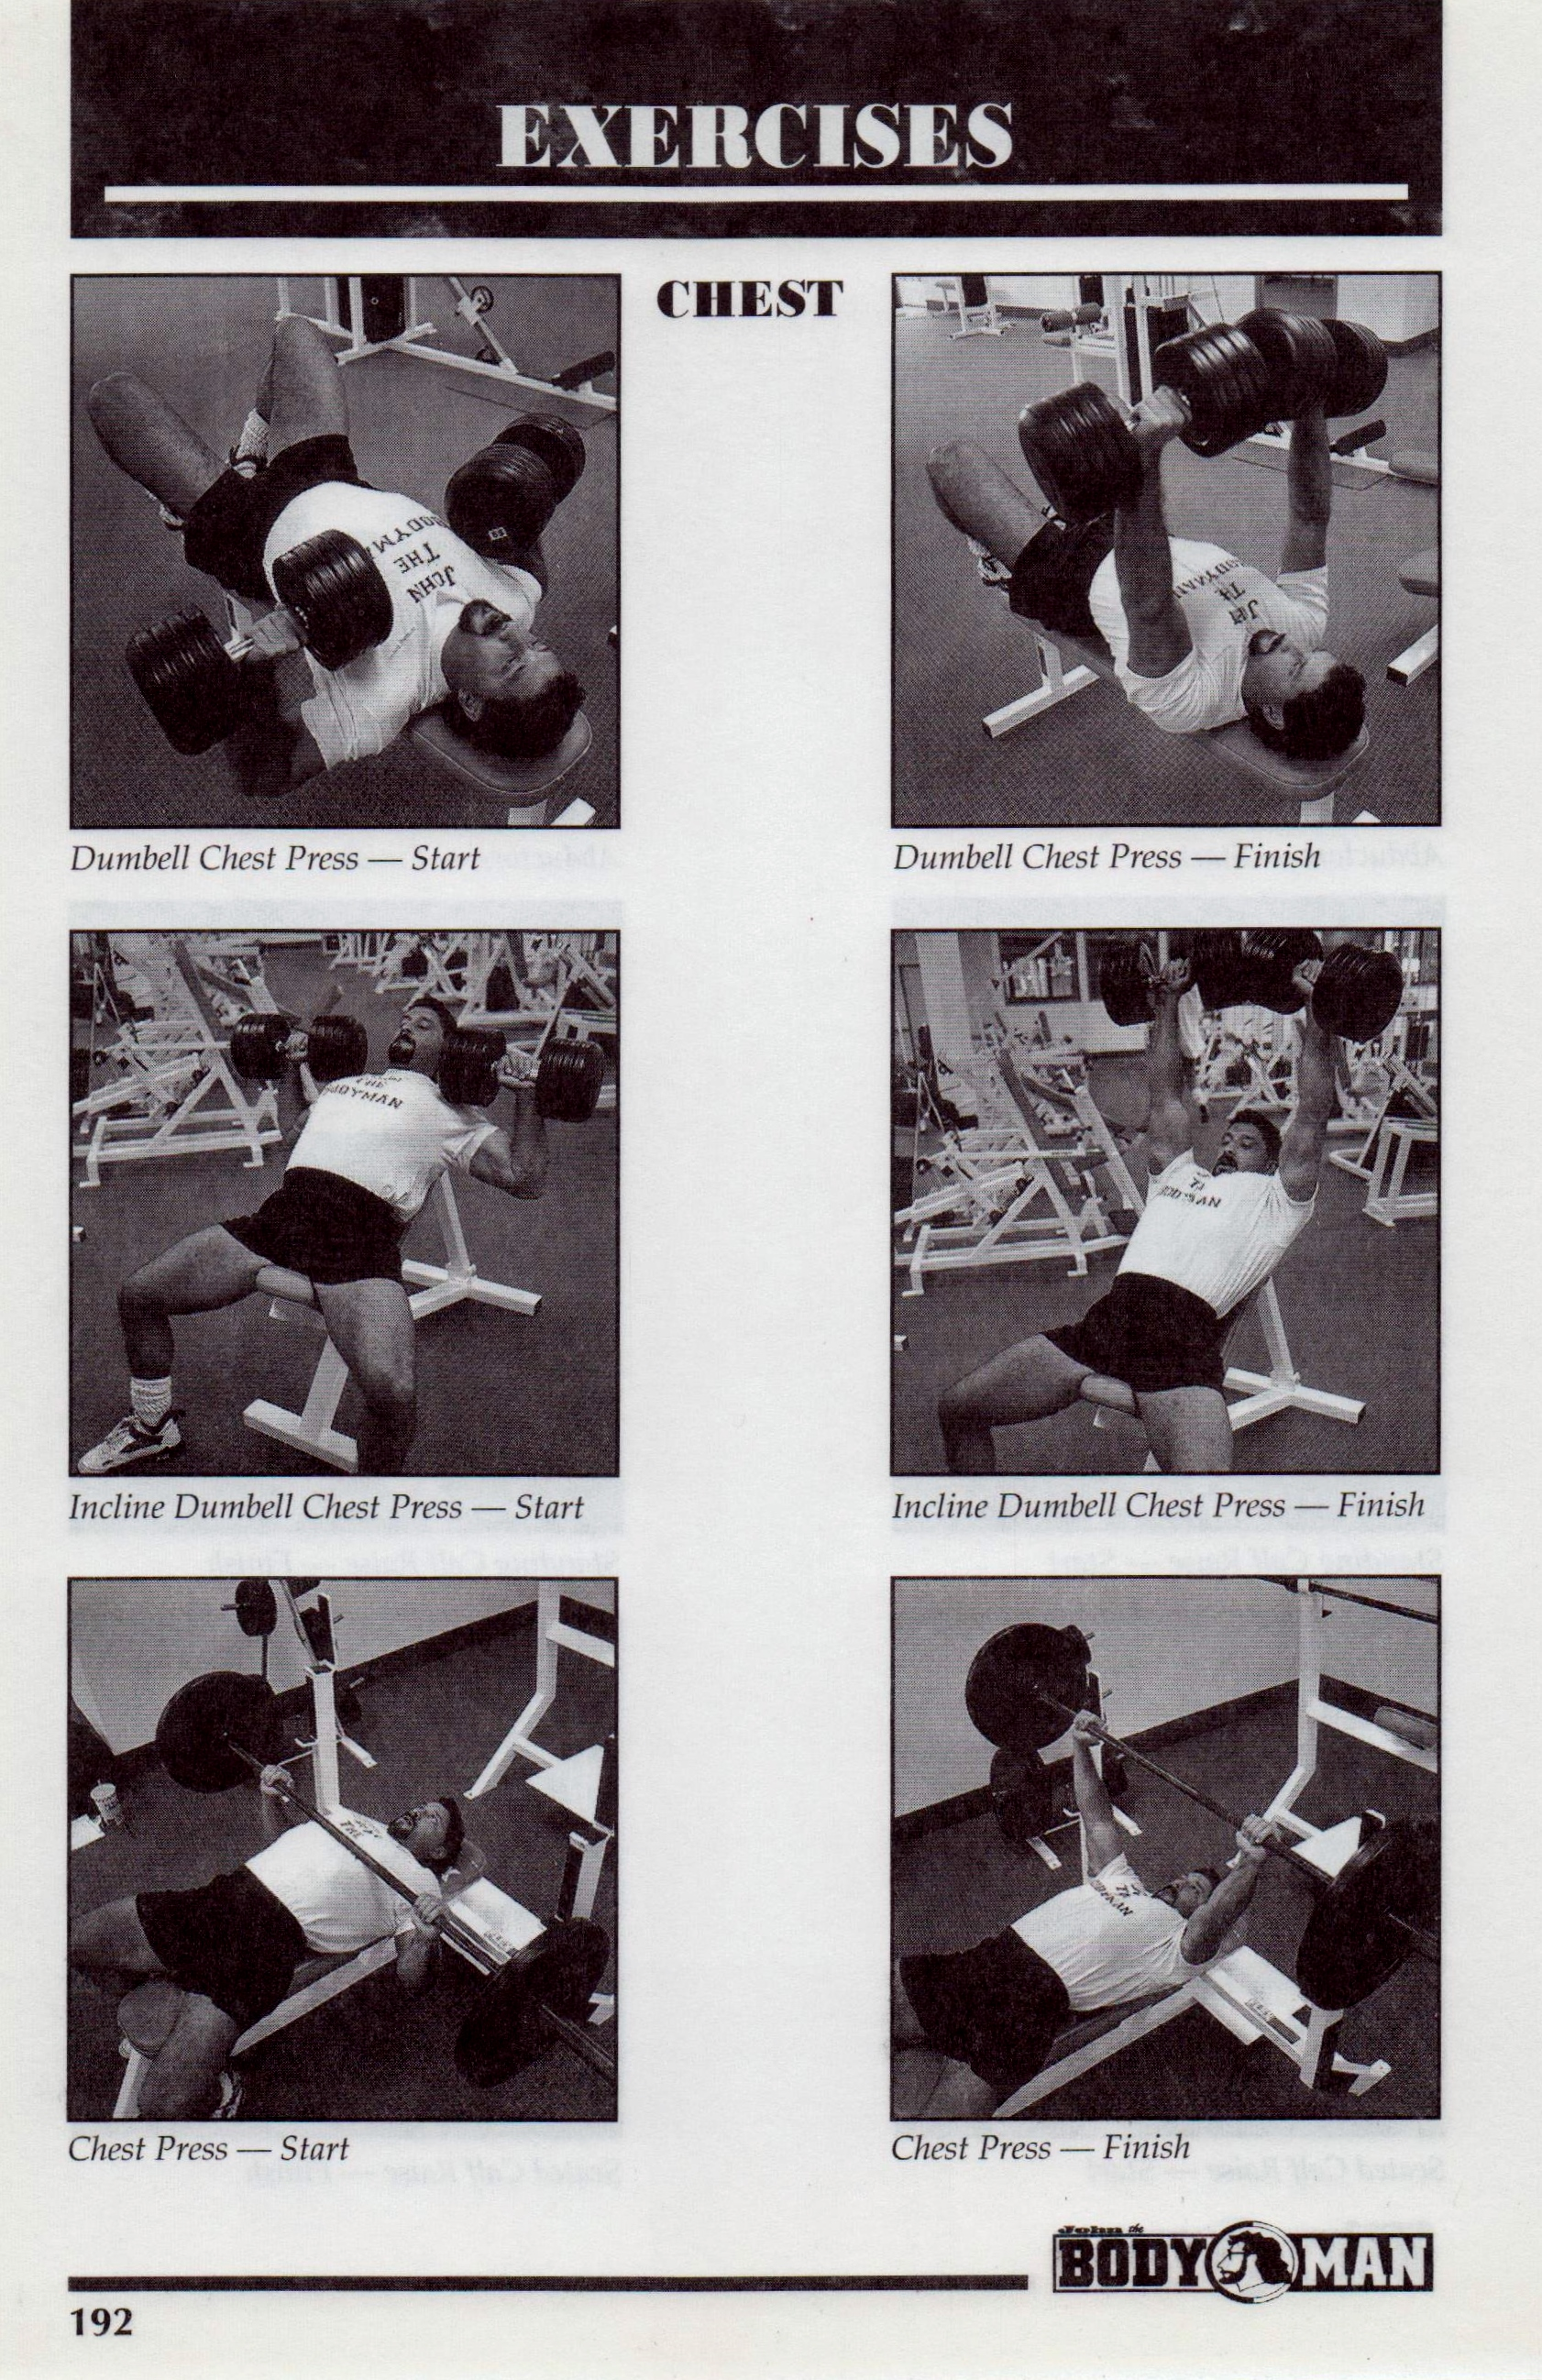 {Bodyman Chest Workout p192}